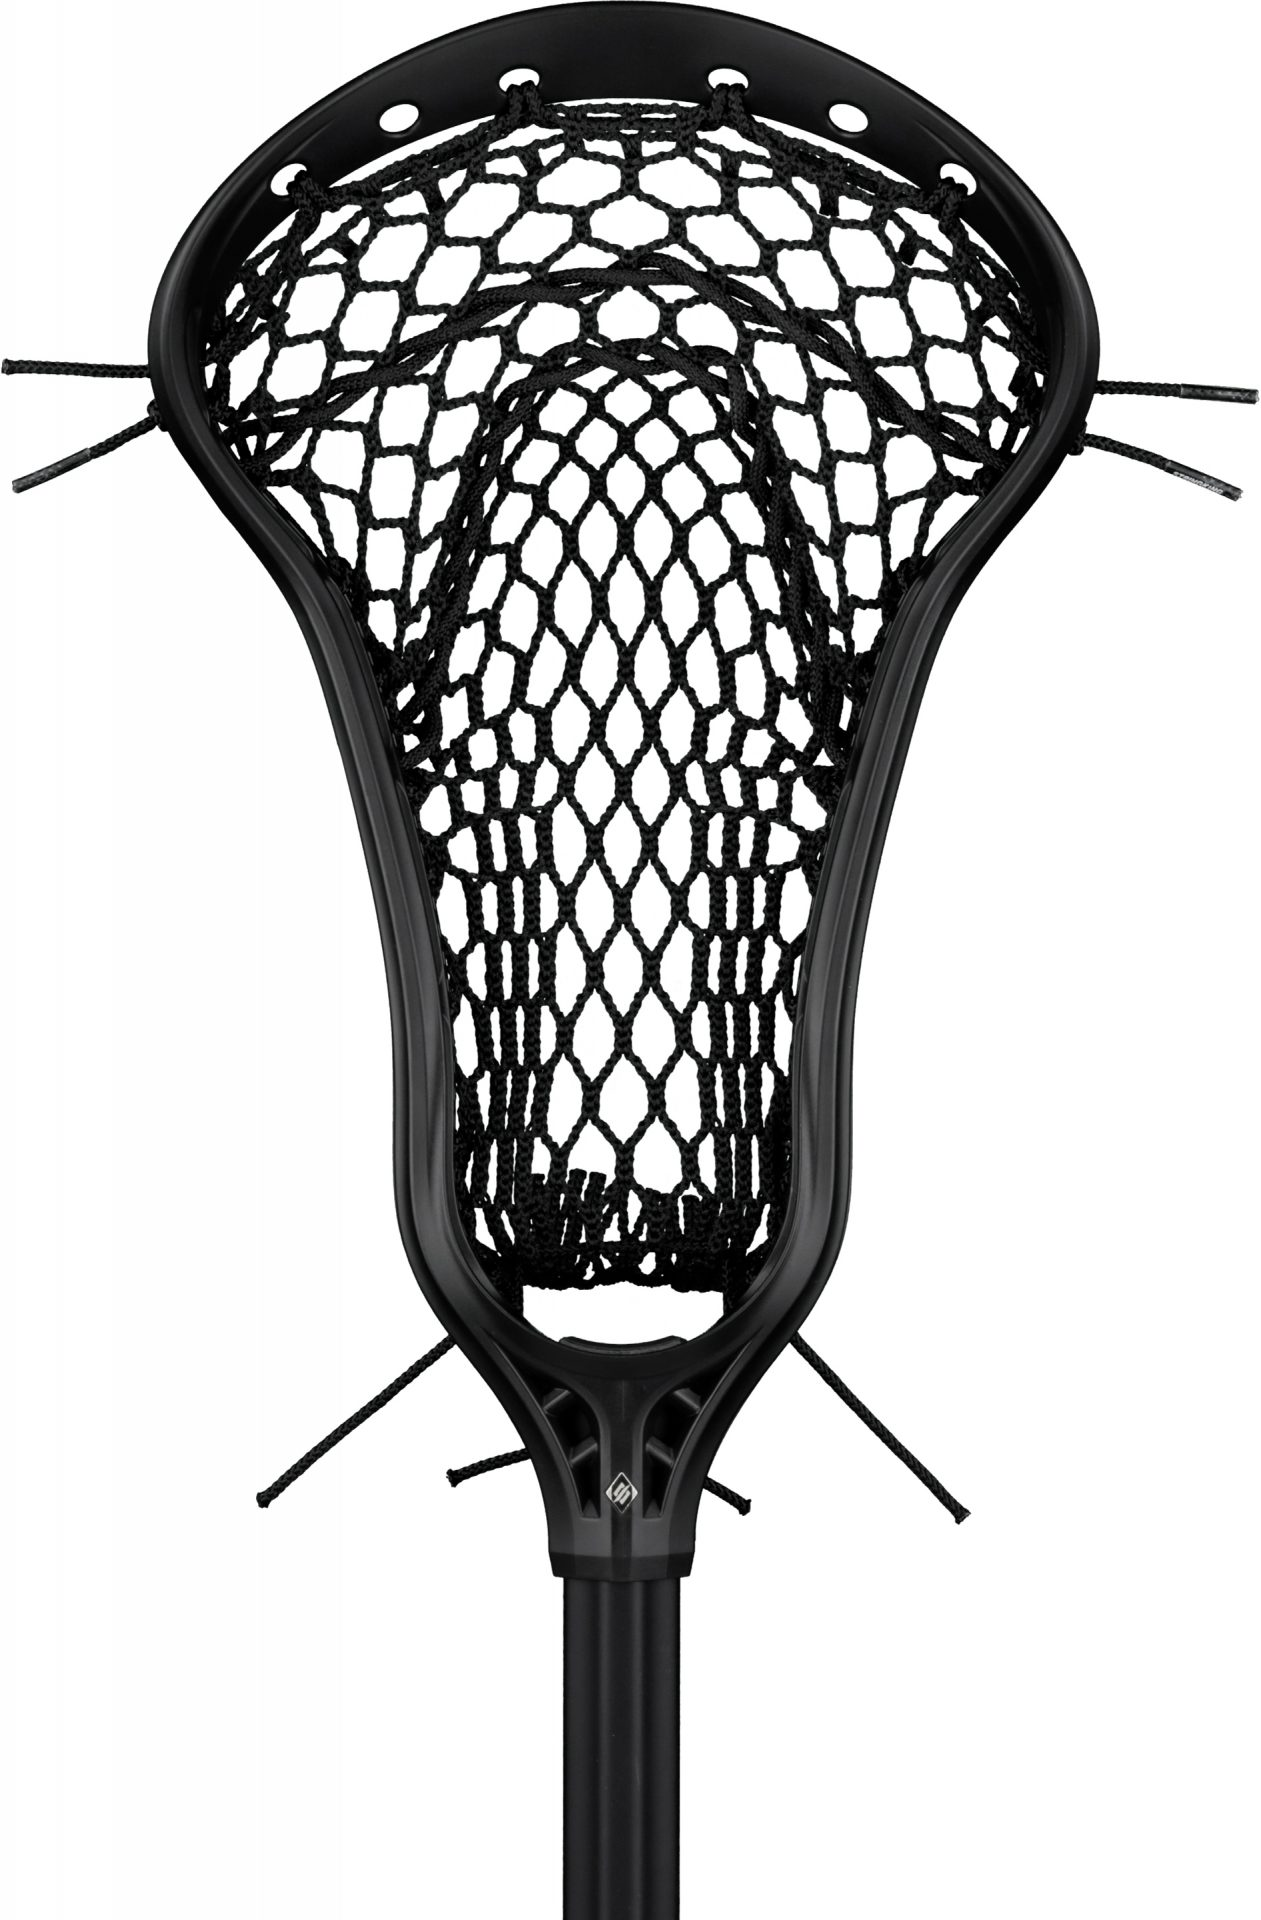 StringKing Women's Complete 2 Pro Offense Front View Black Strung Home